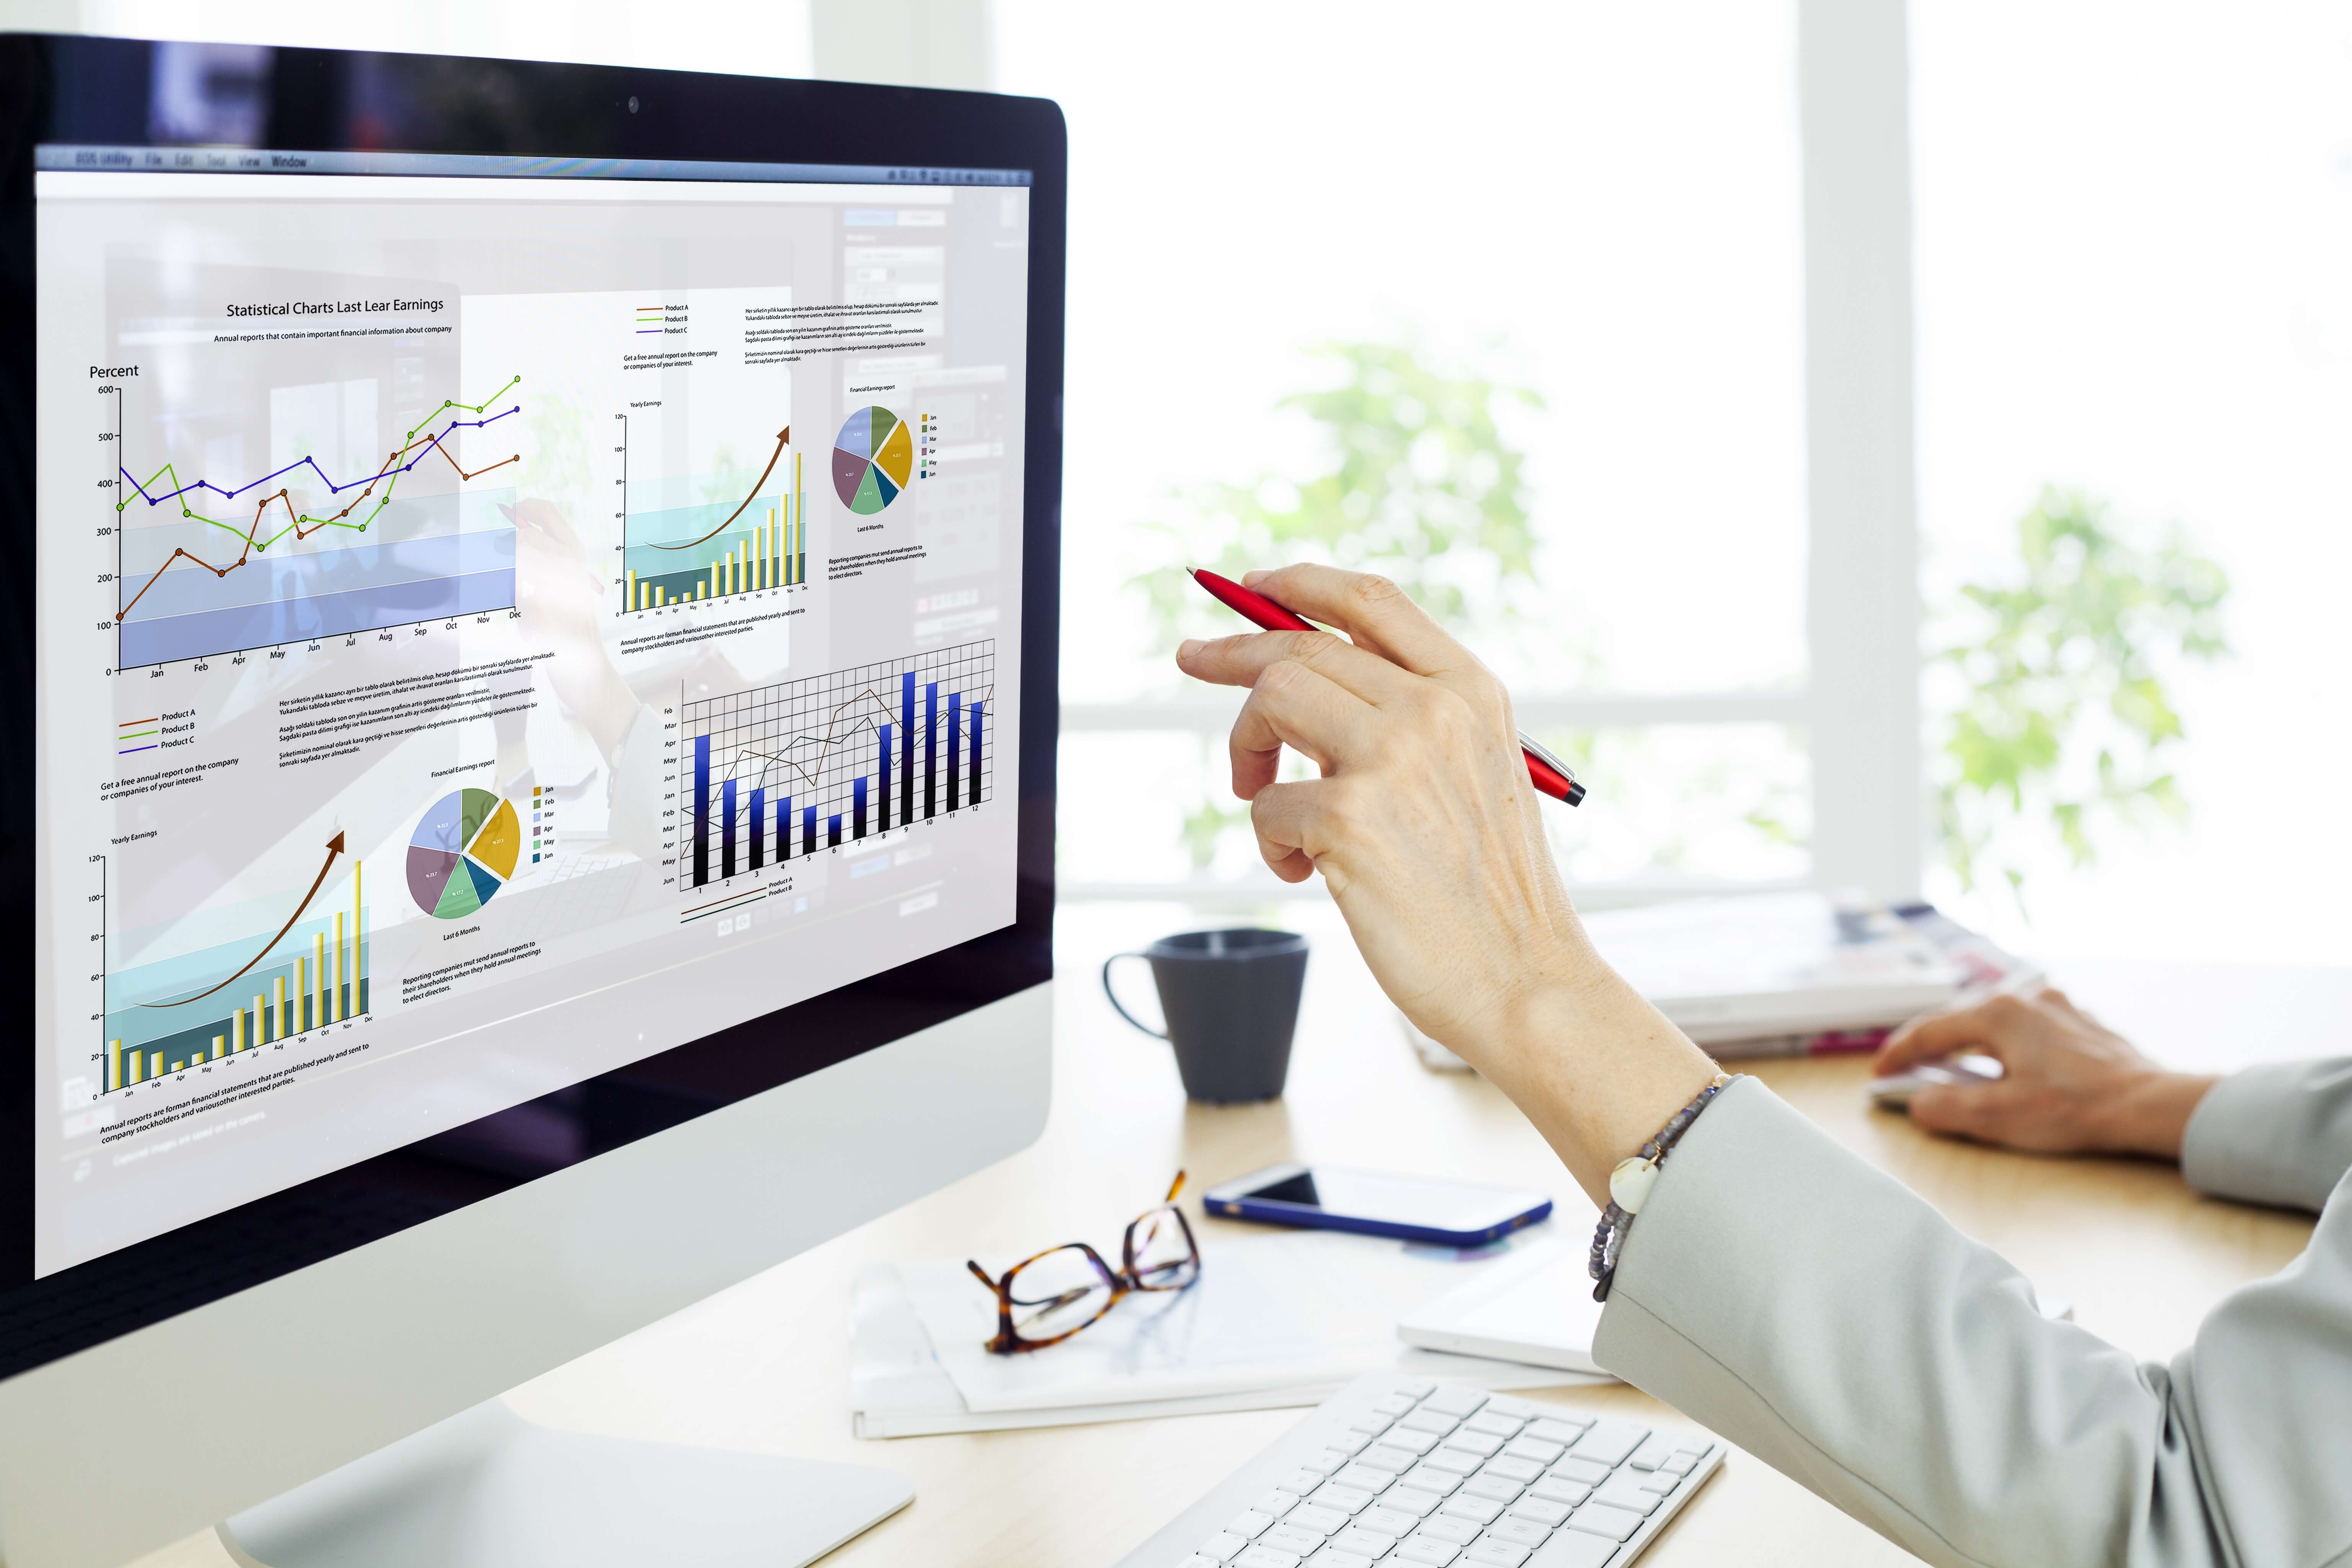 What to Look for in Effective Competitive Intelligence Software